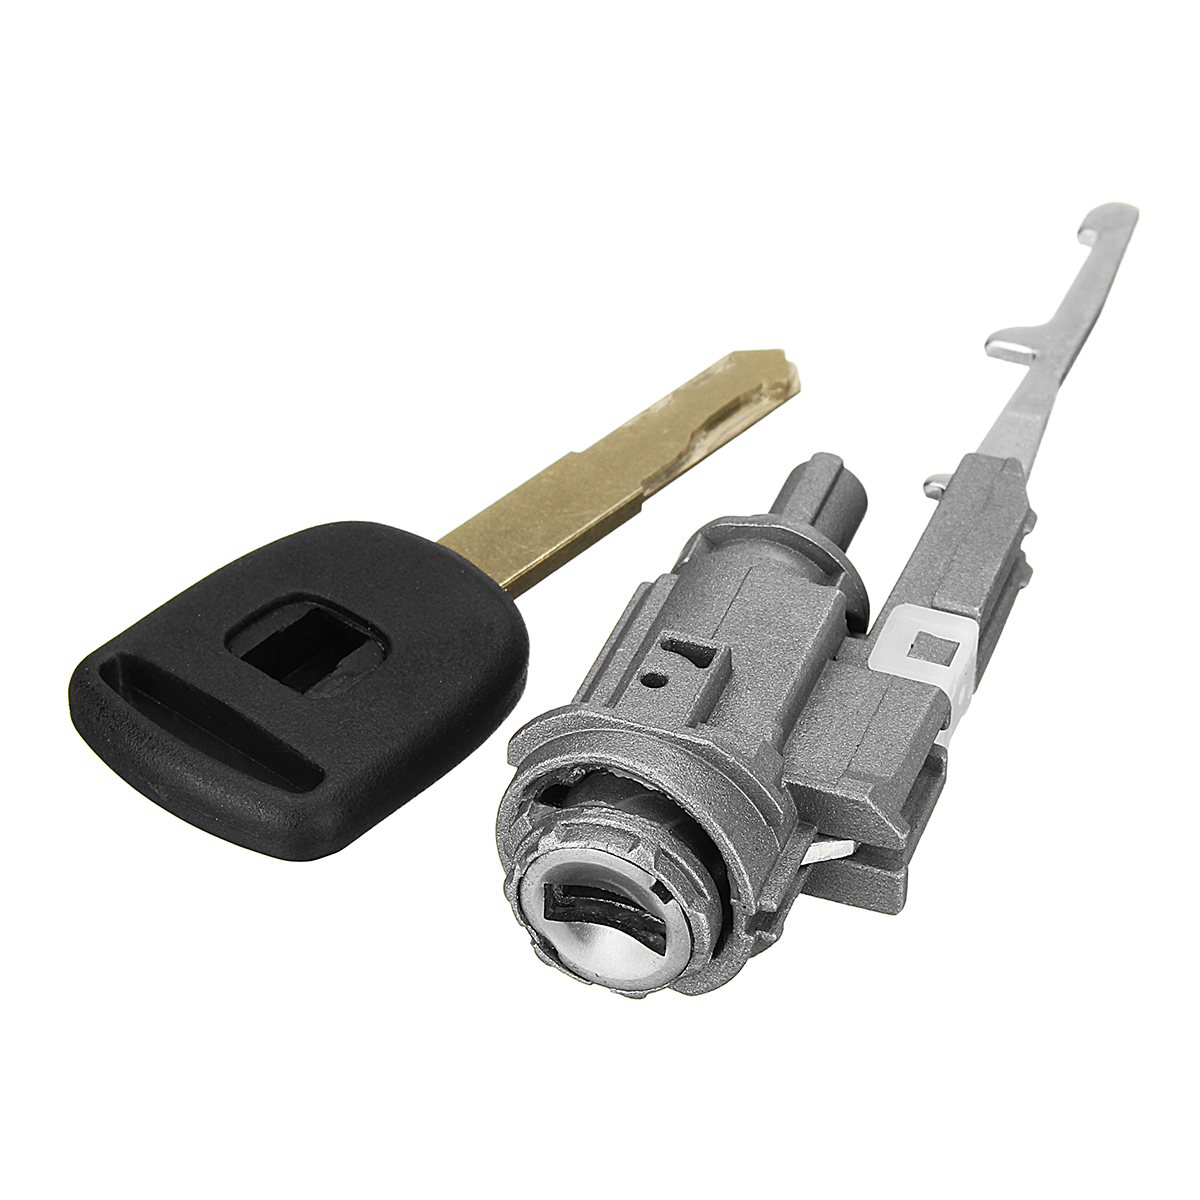 Fits Acura MDX Ignition Lock and Cylinder Switch Standard ...  |Acura Ignition Lock Cylinder